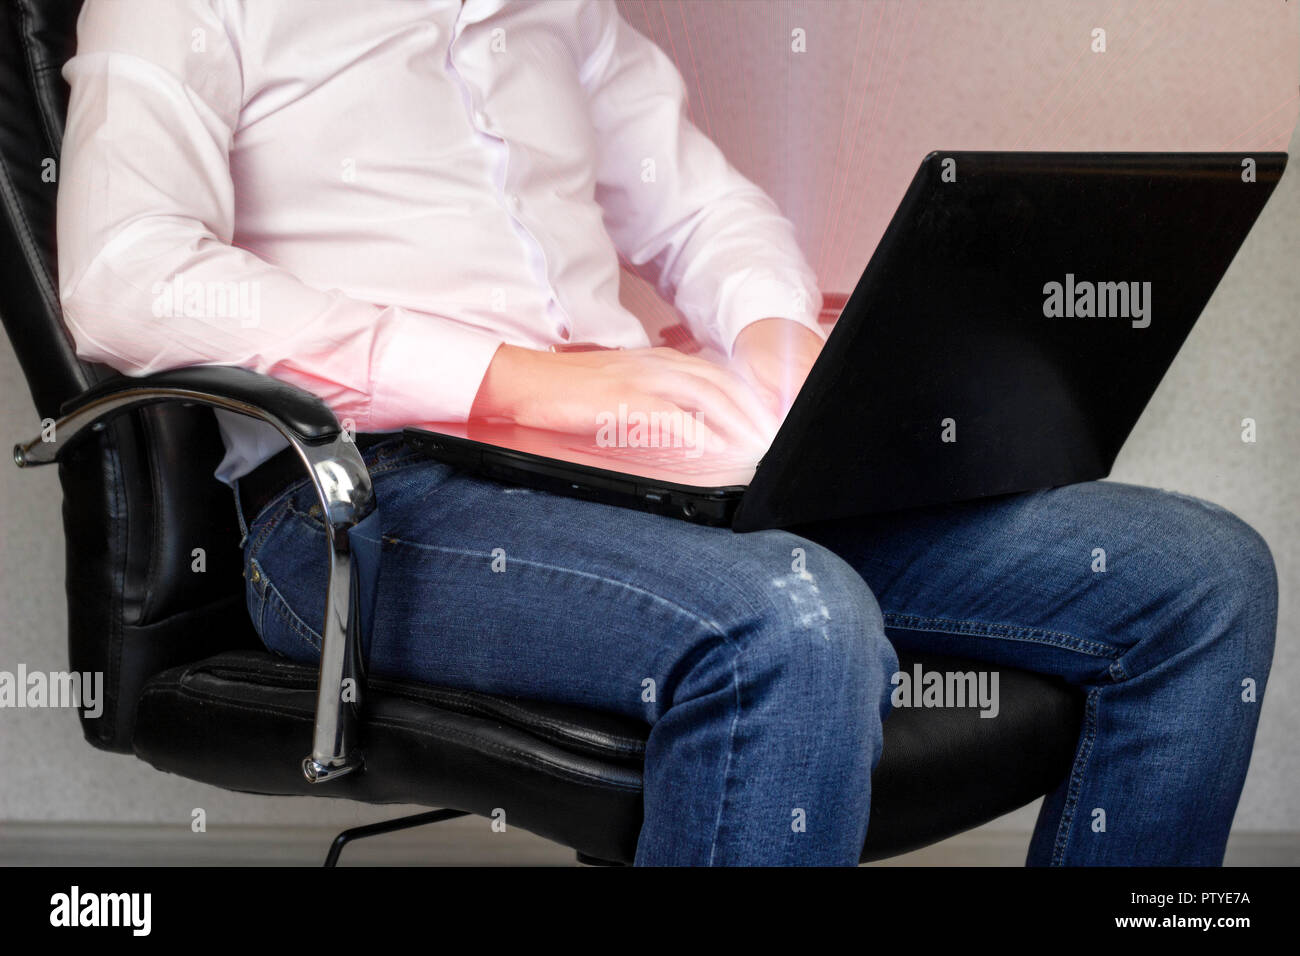 The man is working behind the laptop from the screen is harmful radiation, emitting - Stock Image